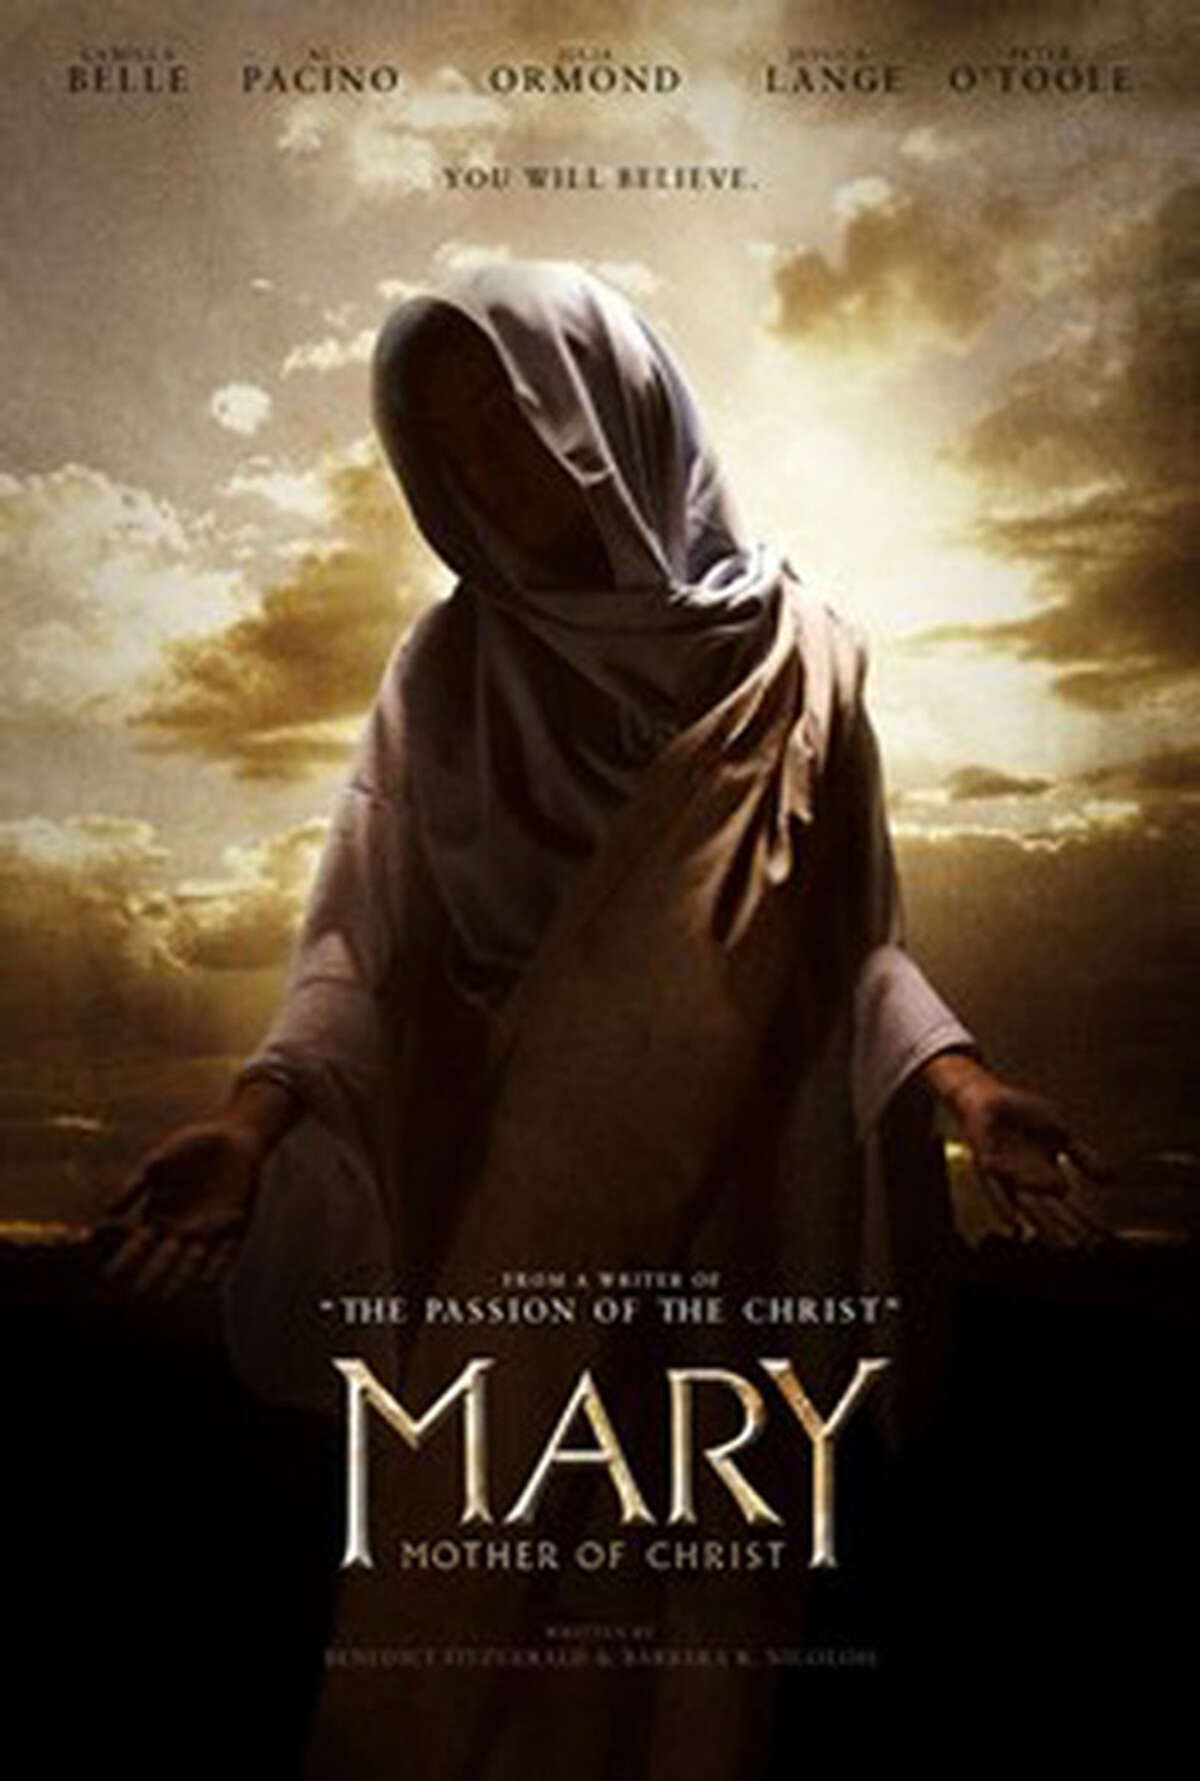 Mary Mother of Christ movie poster.